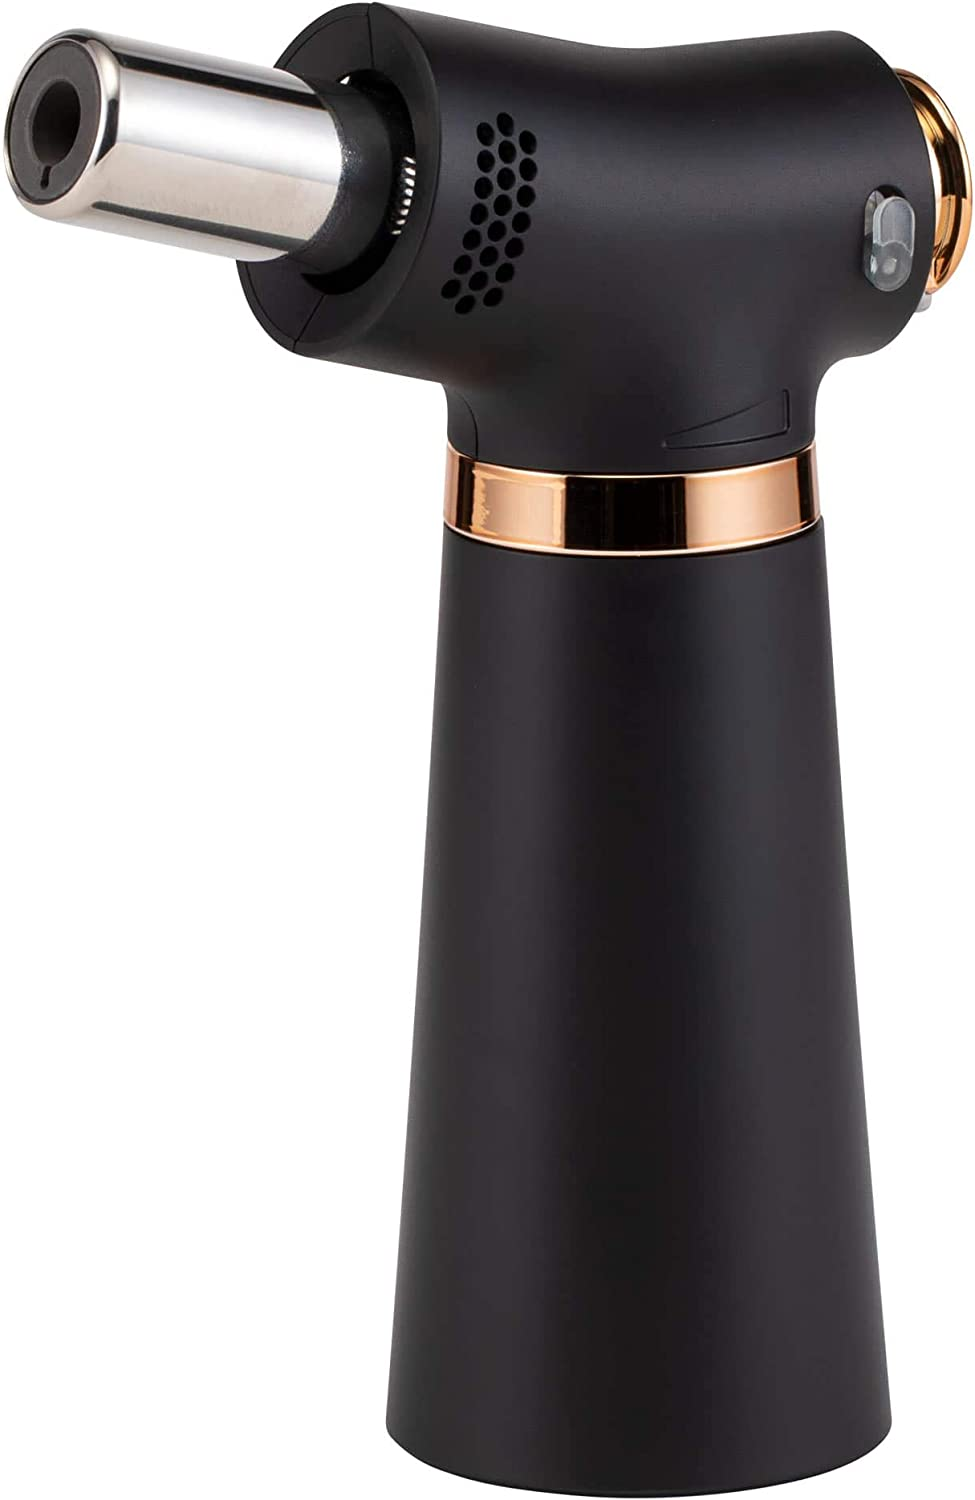 O-Grill Industry No. 1 Chef's Professional Butane Very popular Culinary Torch Stainless Stee